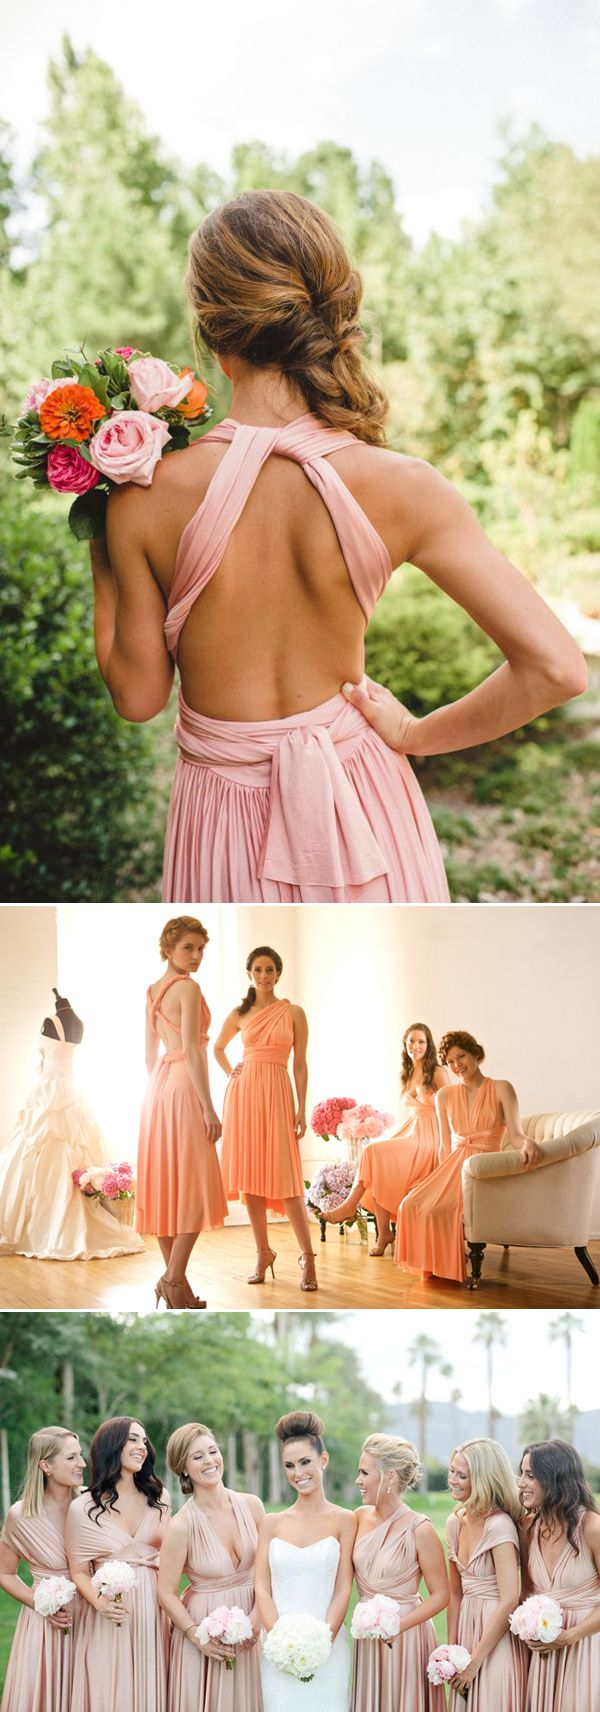 20 Chic and Stylish Convertible (Twist-Wrap) Bridesmaid Dresses - Pink and blush dresses